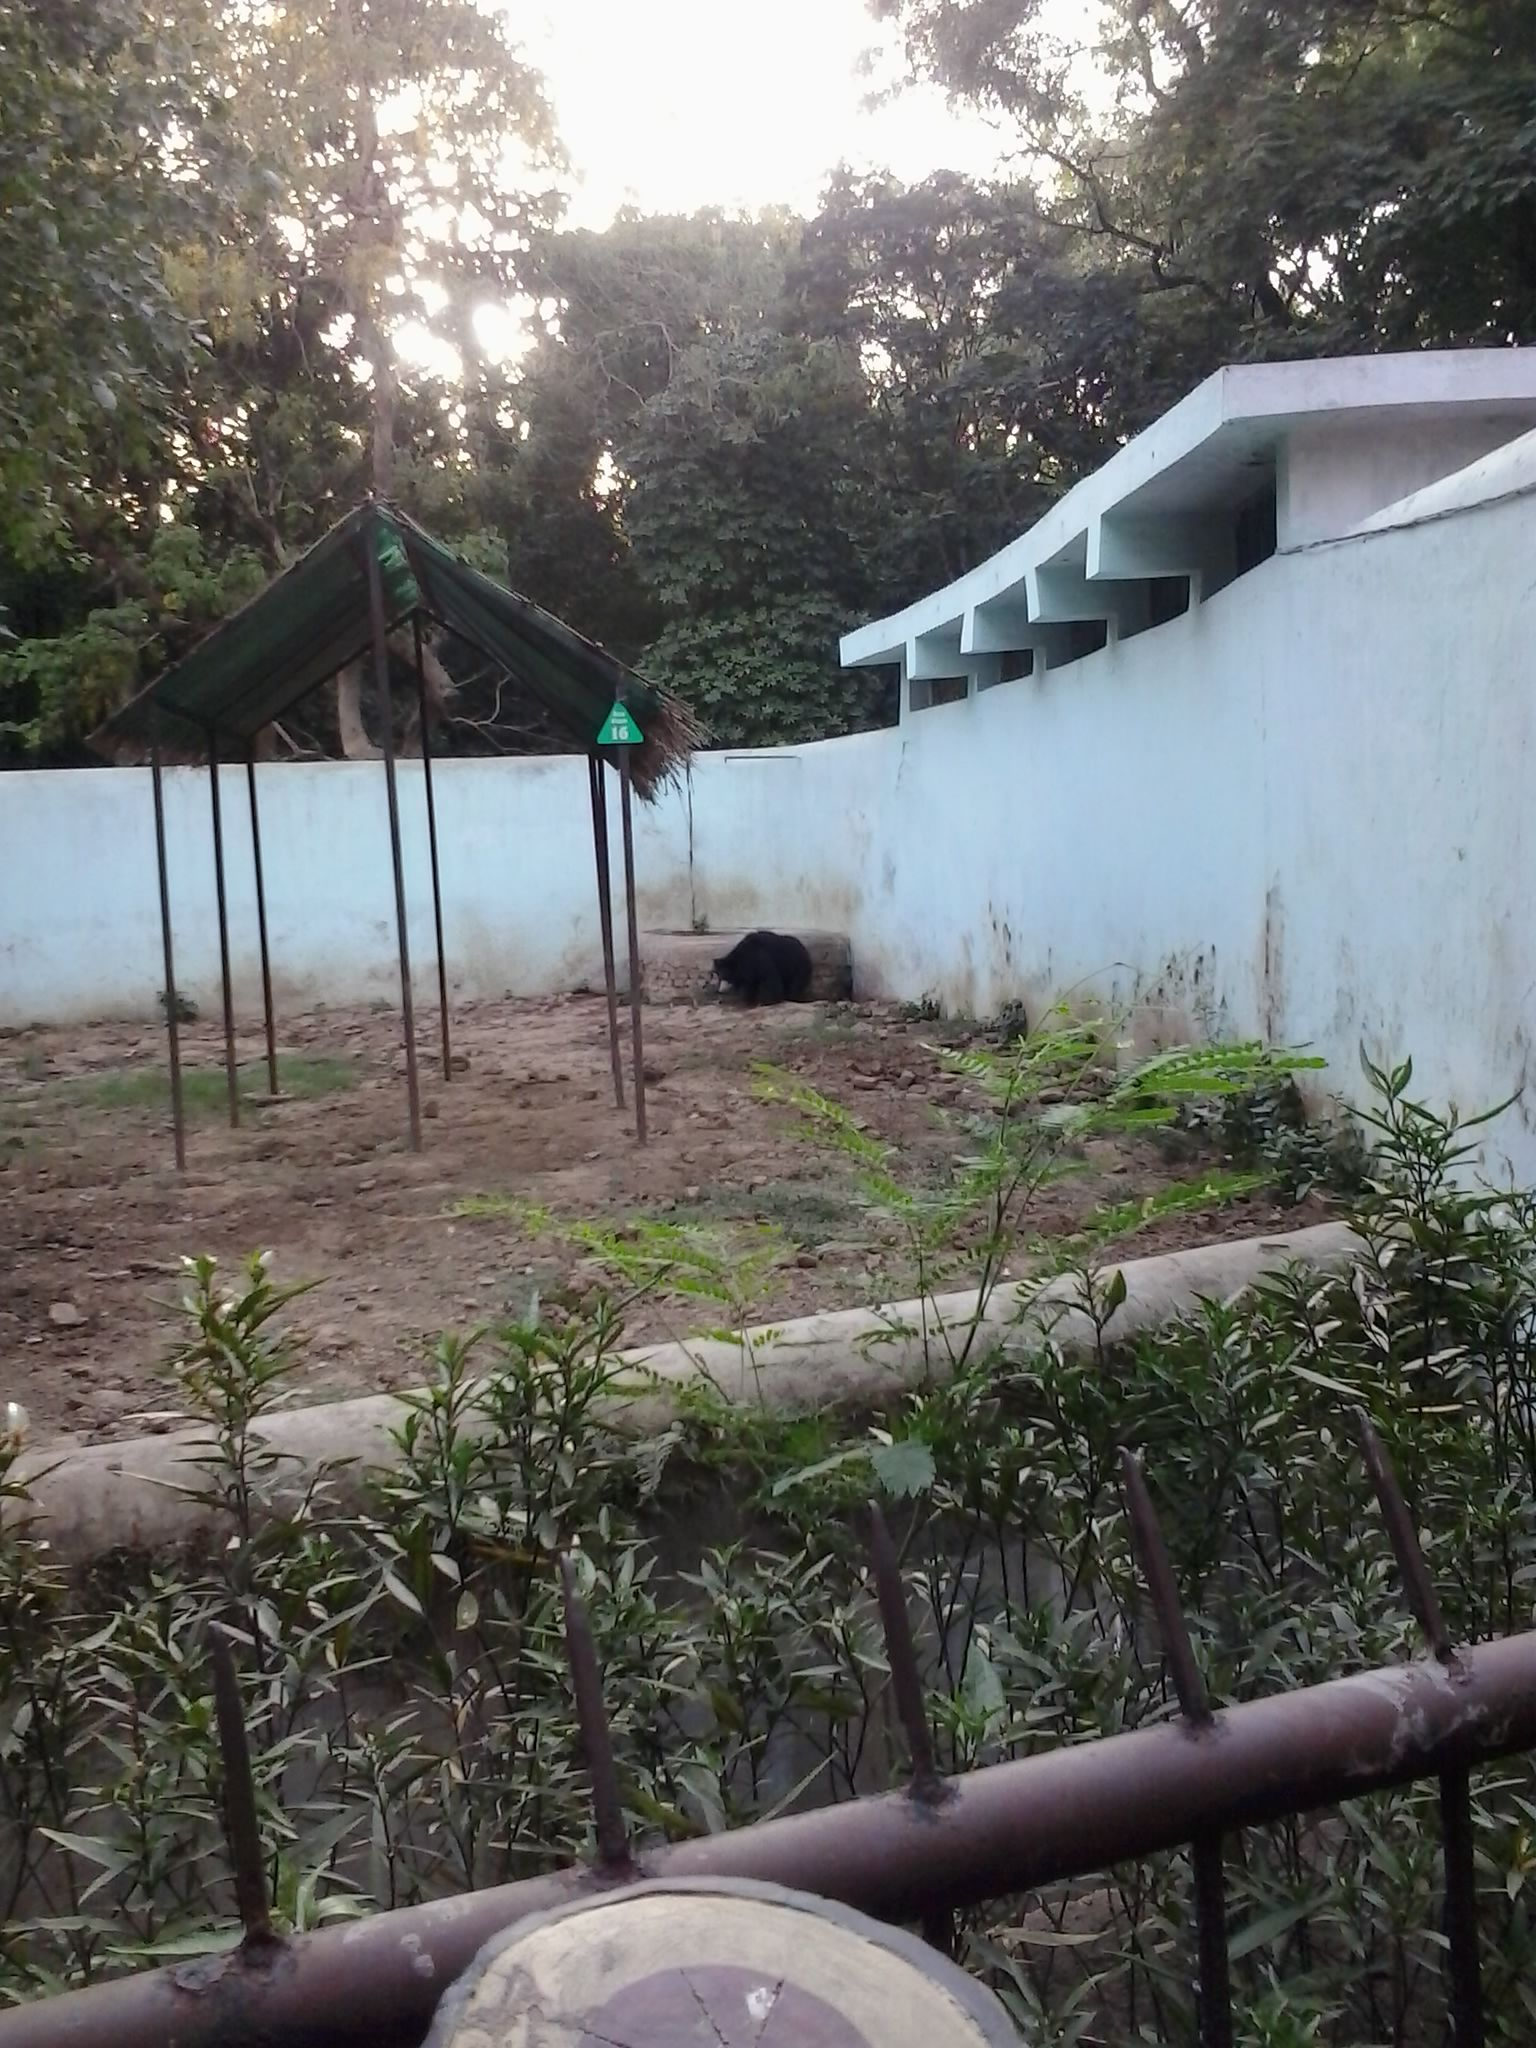 File:Bear in patna zoo jpg - Wikimedia Commons